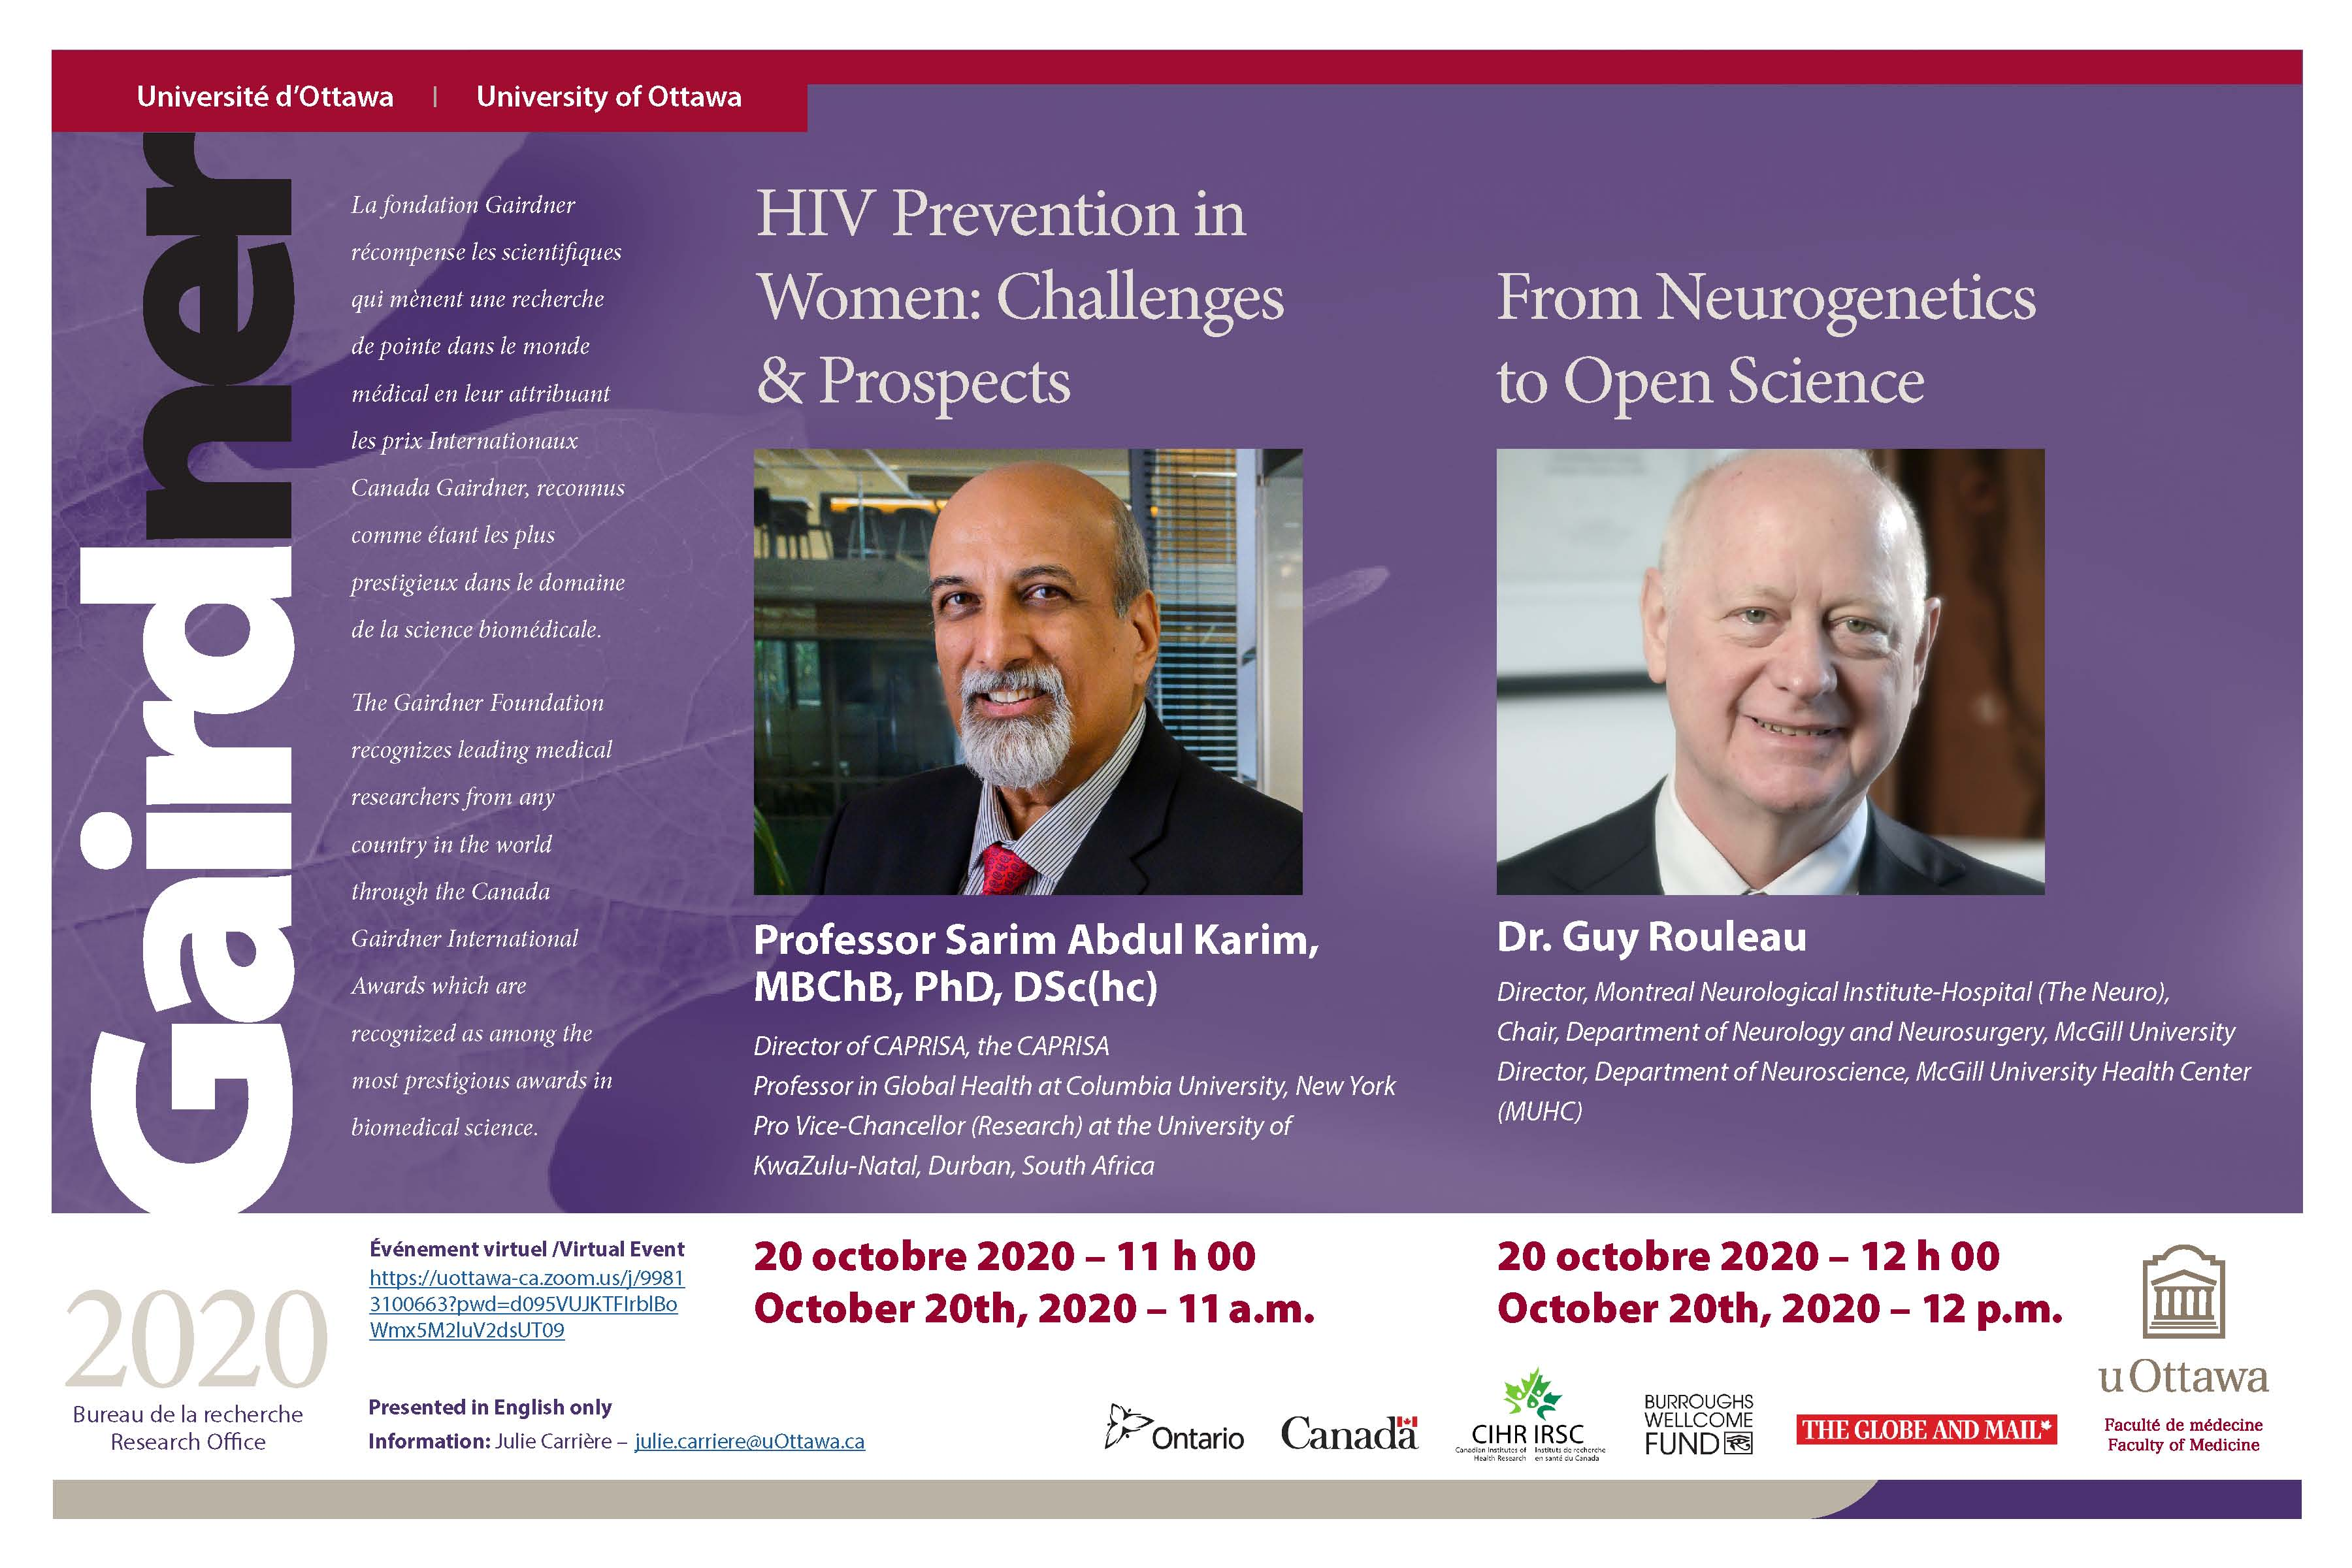 2020 gairdner lecture tuesday october 20